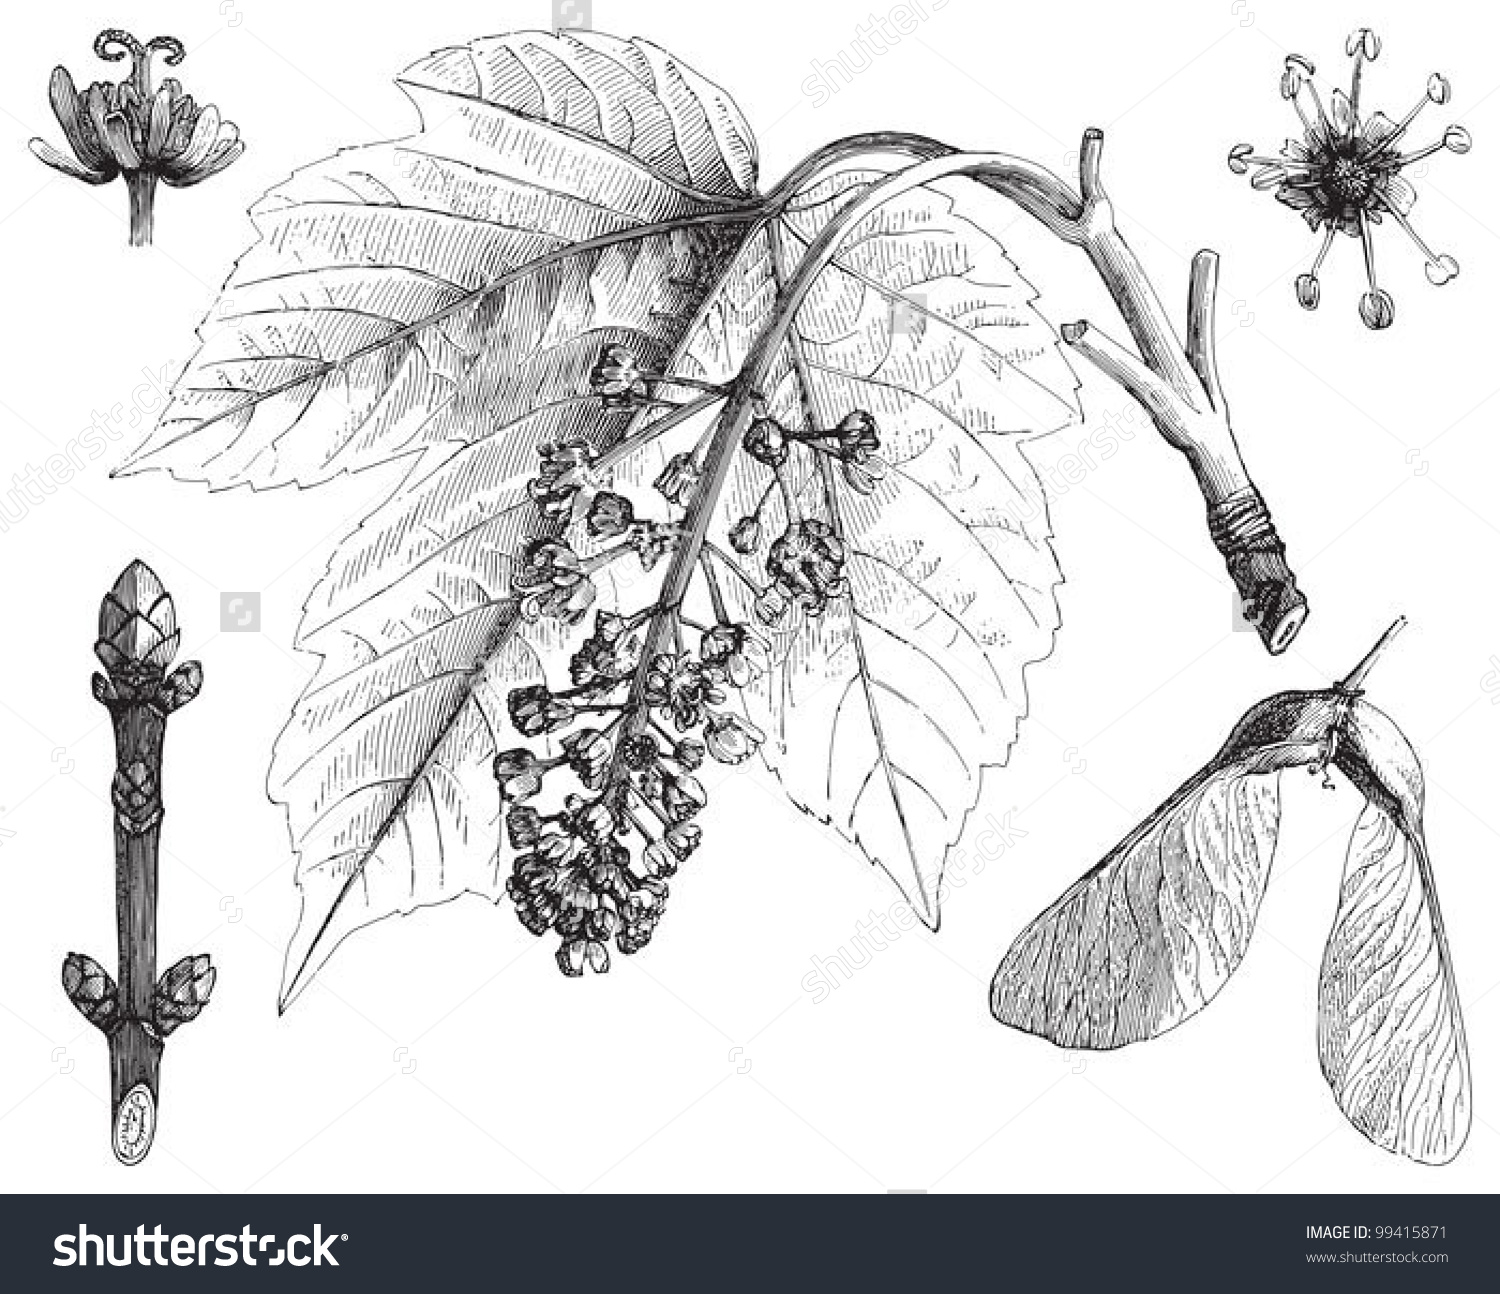 Sycamore Maple Acer Pseudoplatanus Vintage Illustration Stock.